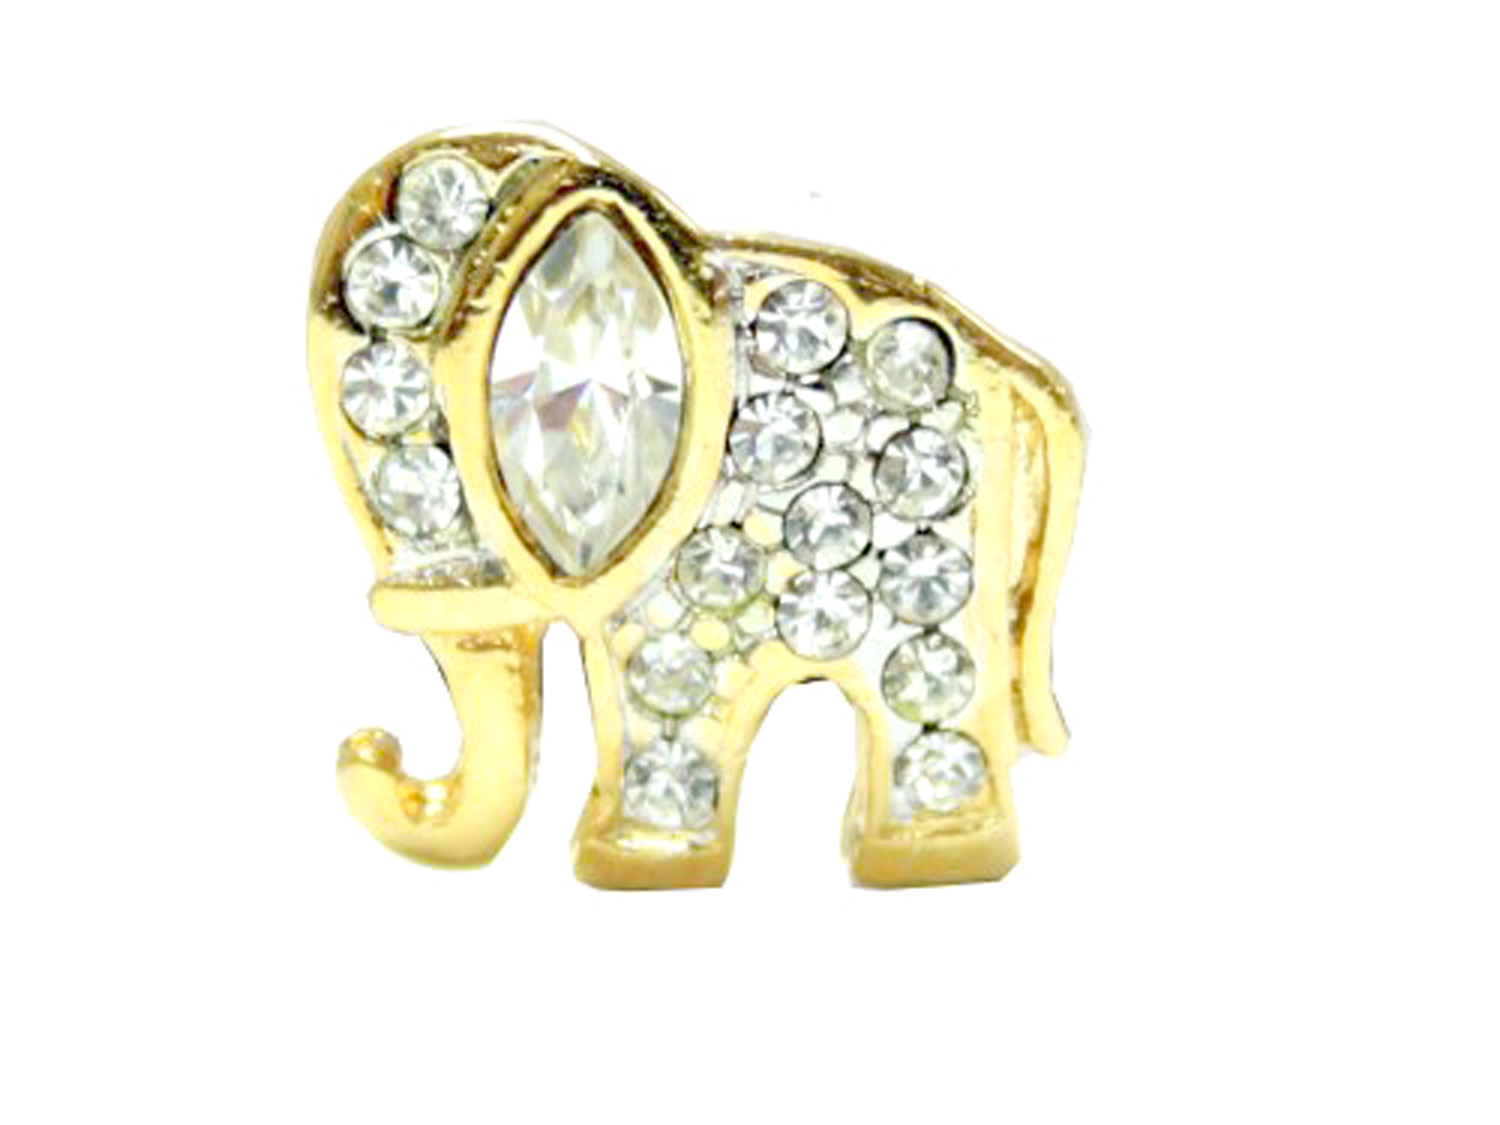 Petite Gold Tone Elephant Brooch Pin with Rhinestones by